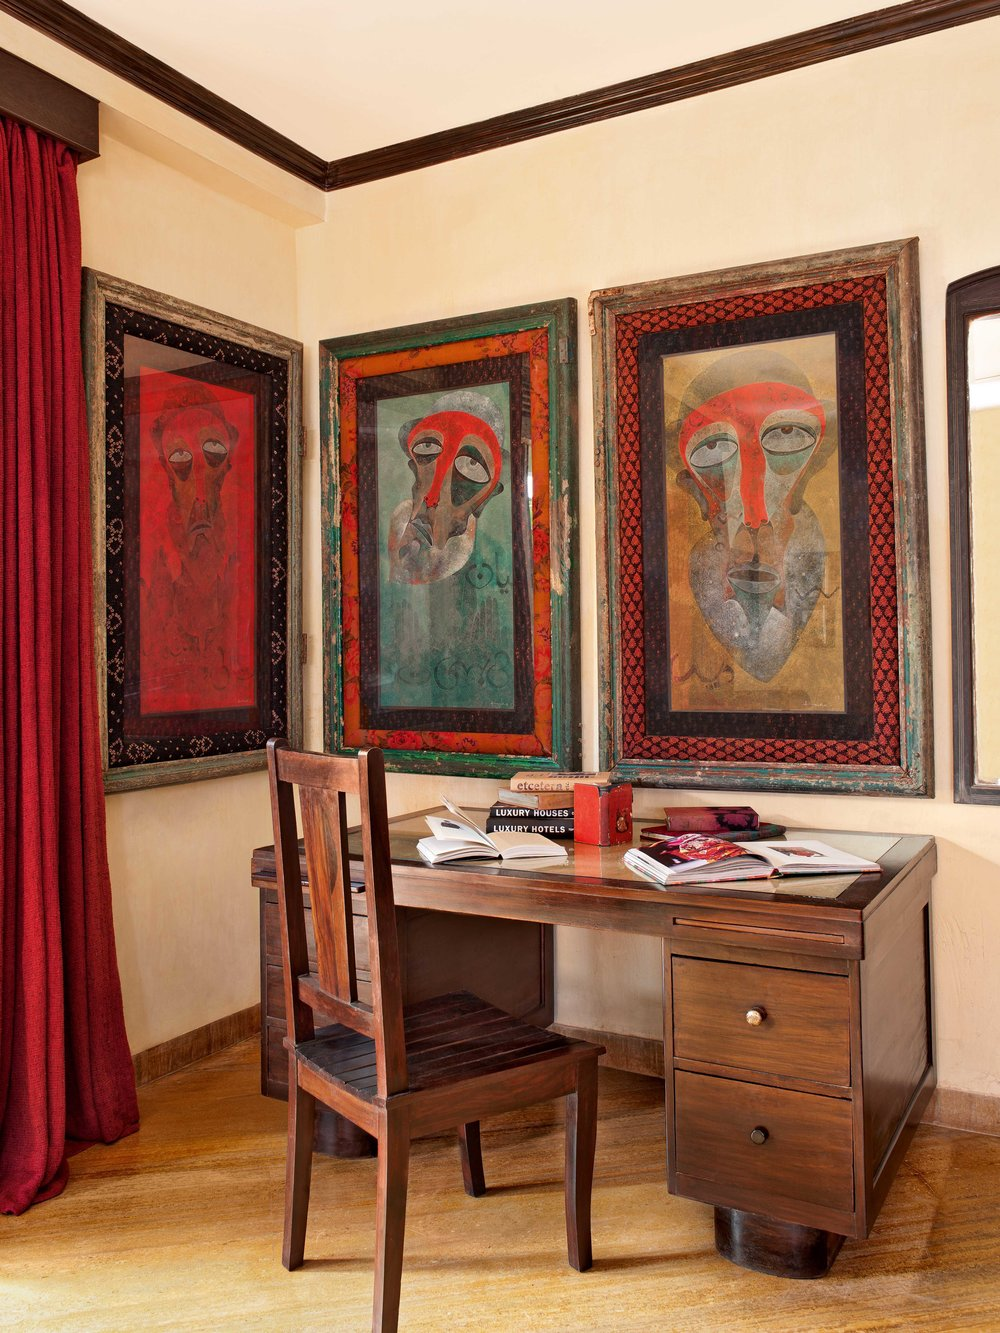 The walls of the otherwise functional study-cum-bedroom are adorned with art. A partner's desk from Russel Exchange in Kolkata is paired with a chair from Mukherjee's paternal home.